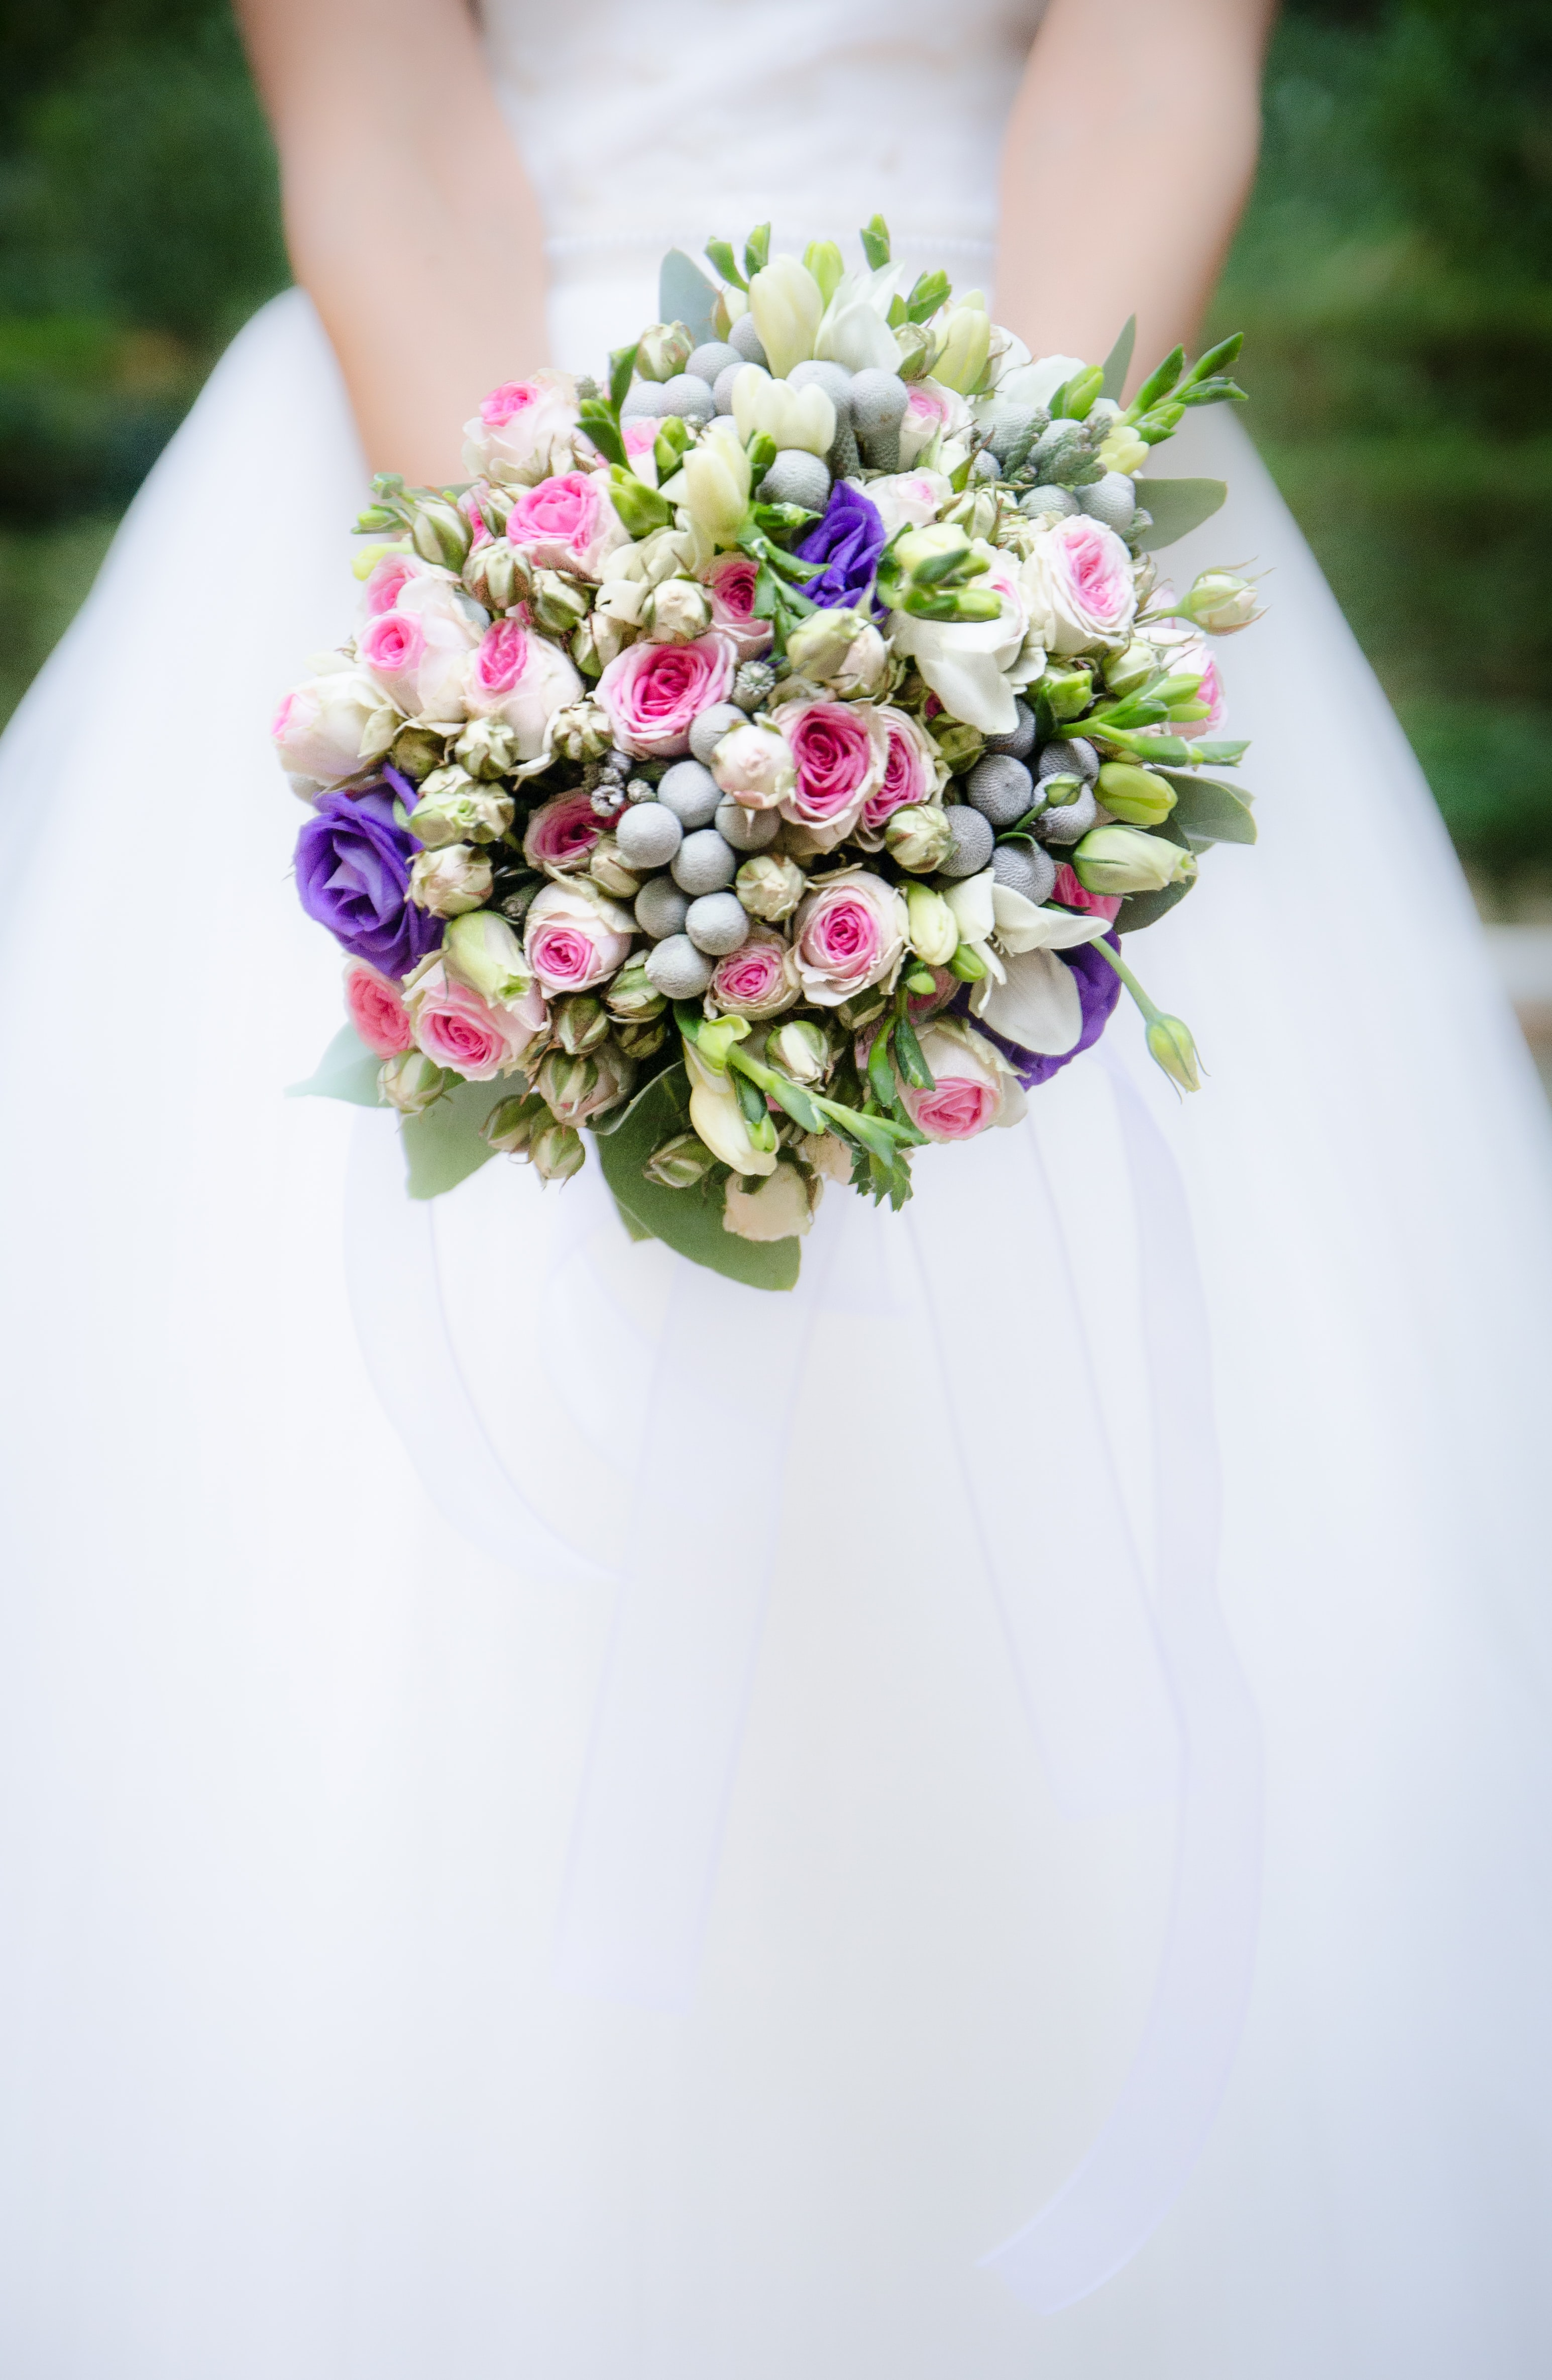 A bride in a wedding dress holding a magnificent bridal bouquet